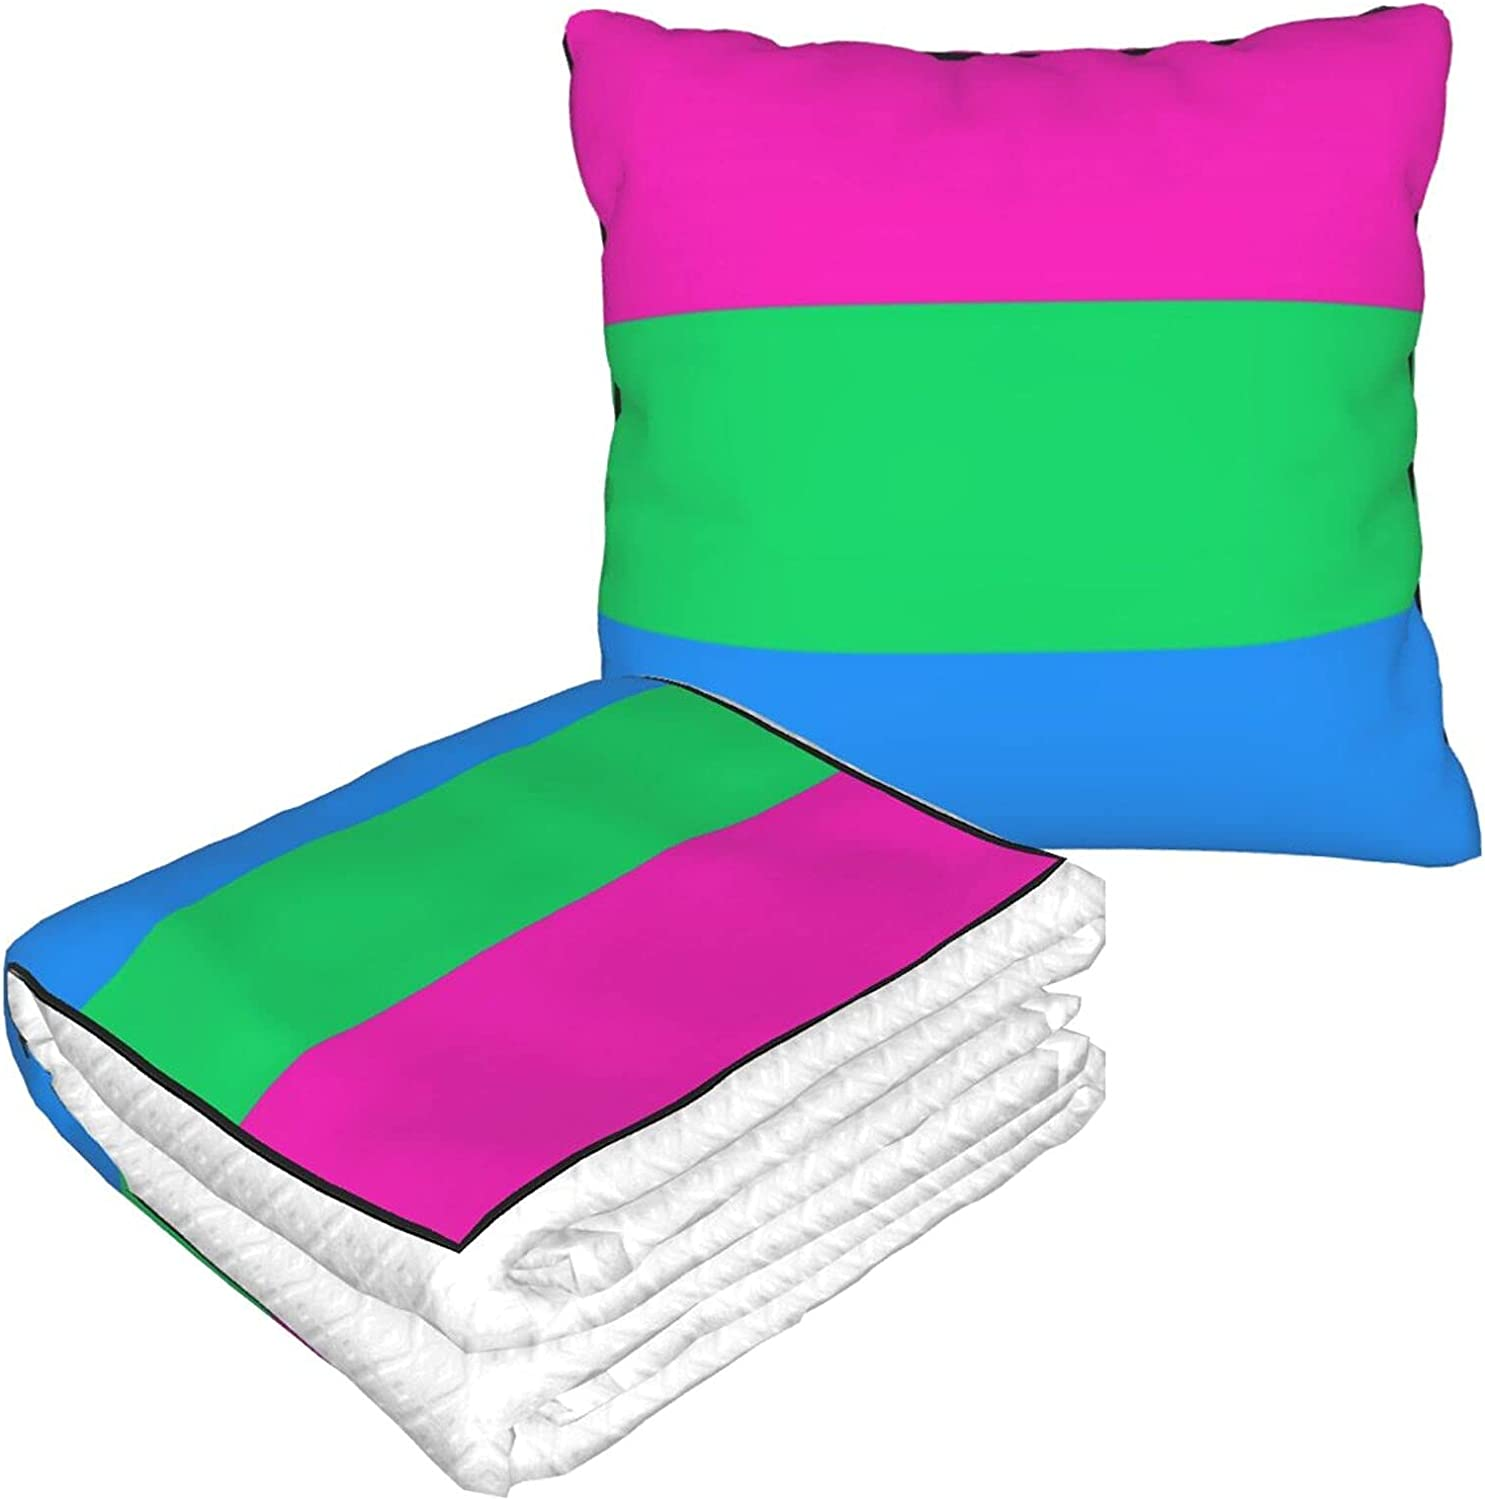 Foldable Year-end annual account Pillow Blanket PolySexual Year-end gift Pride Flag for Travel LGBTQ